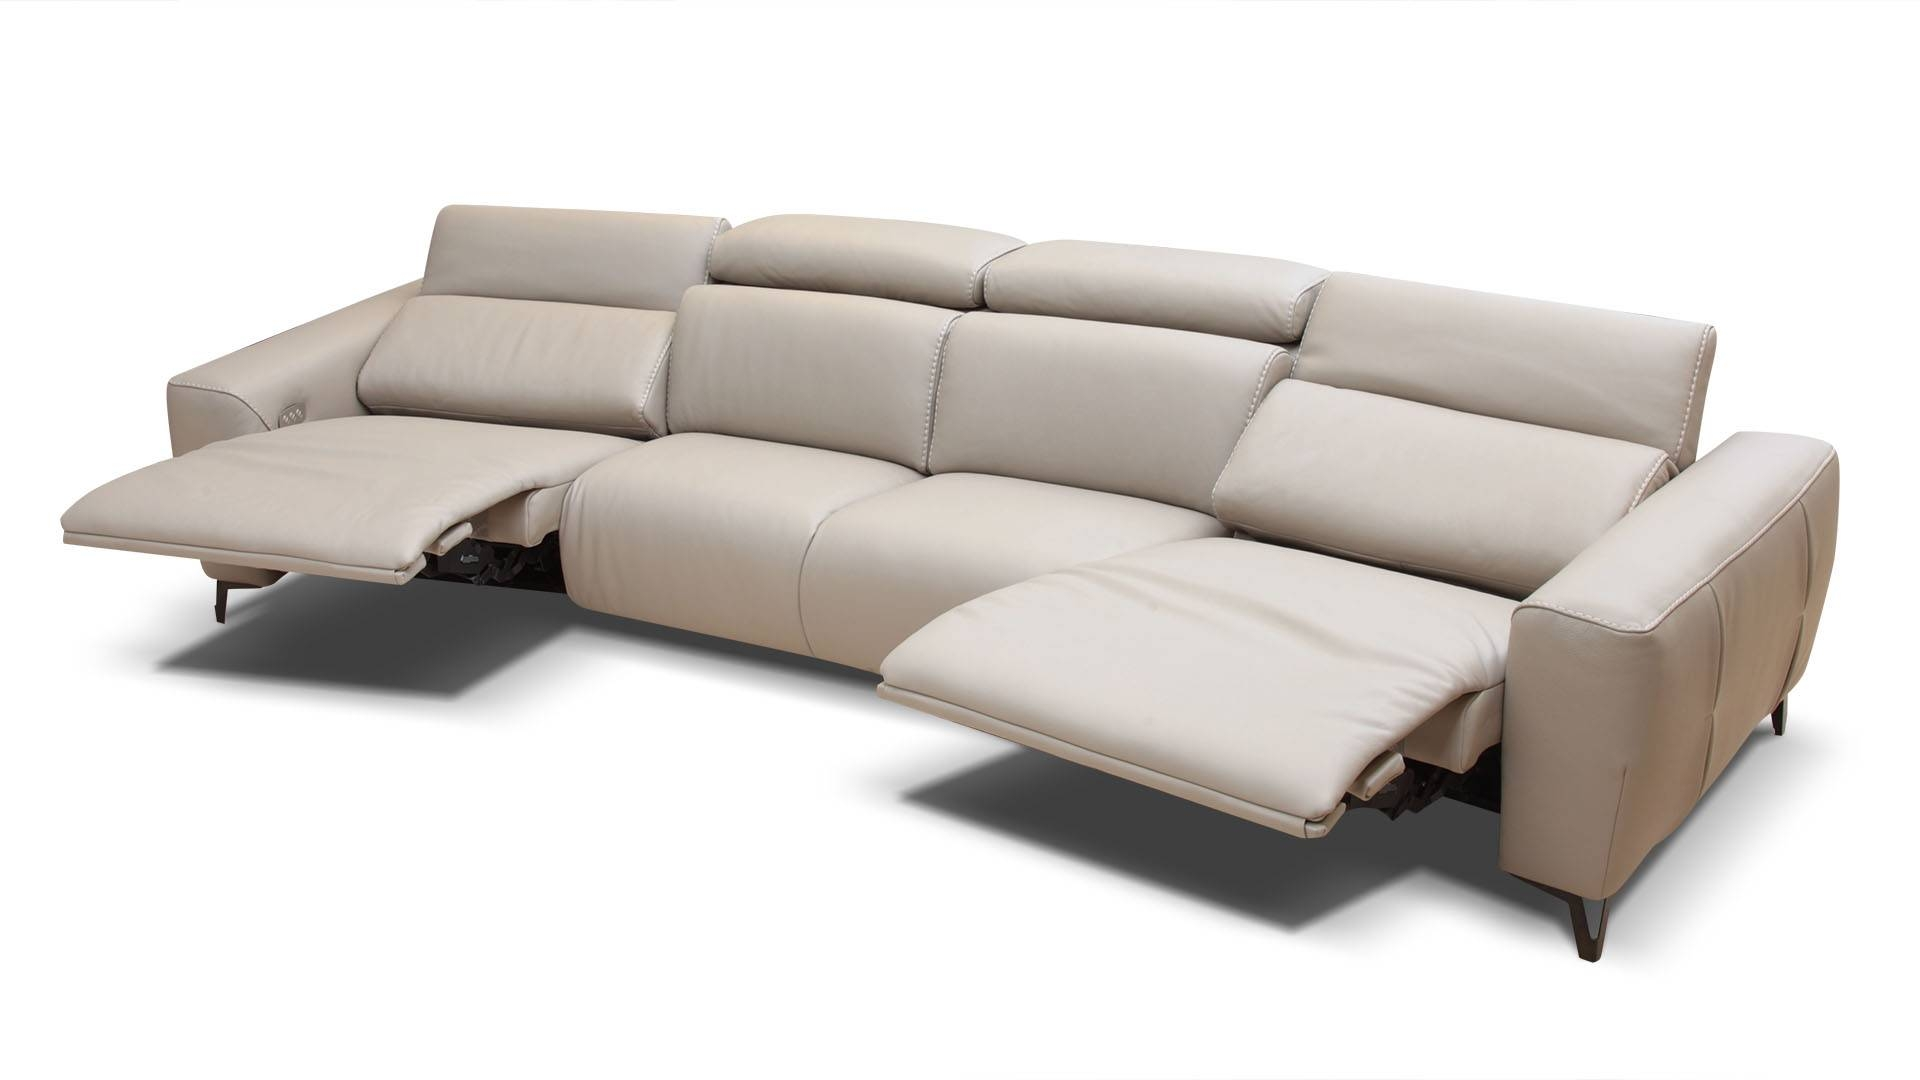 Power Motion Sofas & Sectionals | Braccisofas intended for Angled Chaise Sofa (Image 15 of 30)